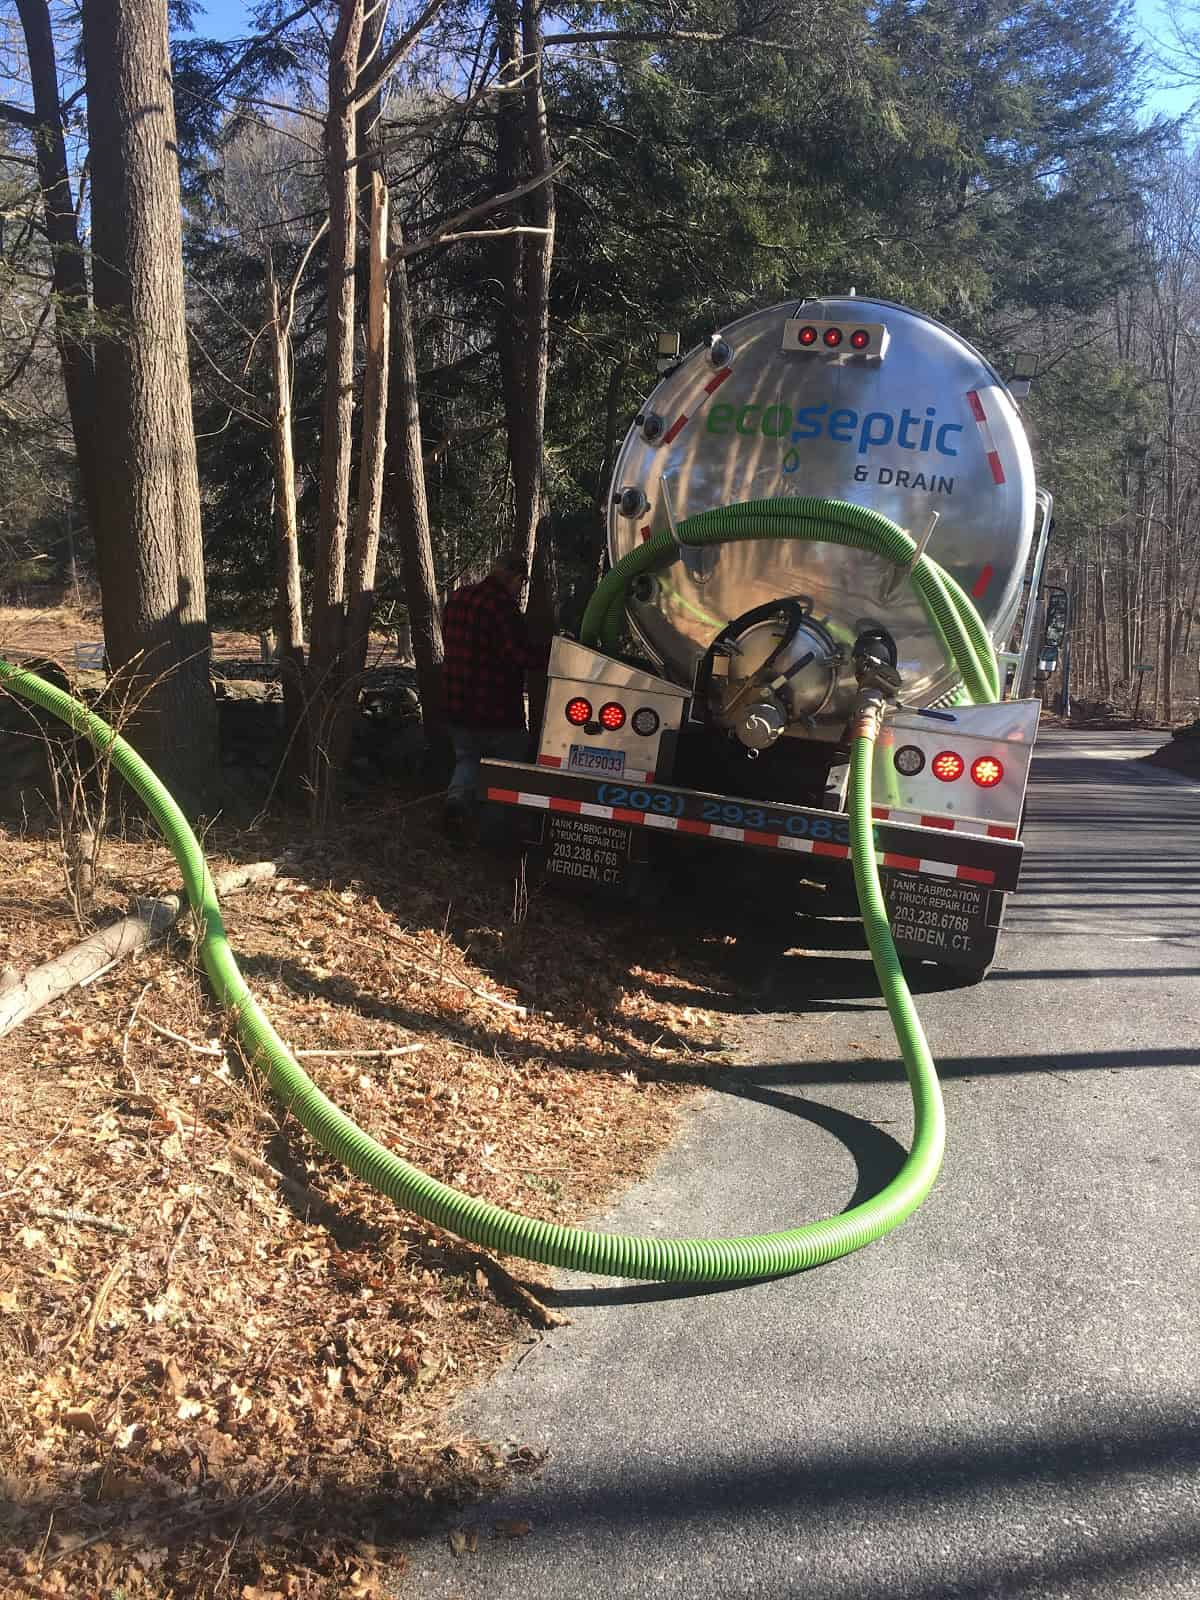 Septic pumping in westport ct